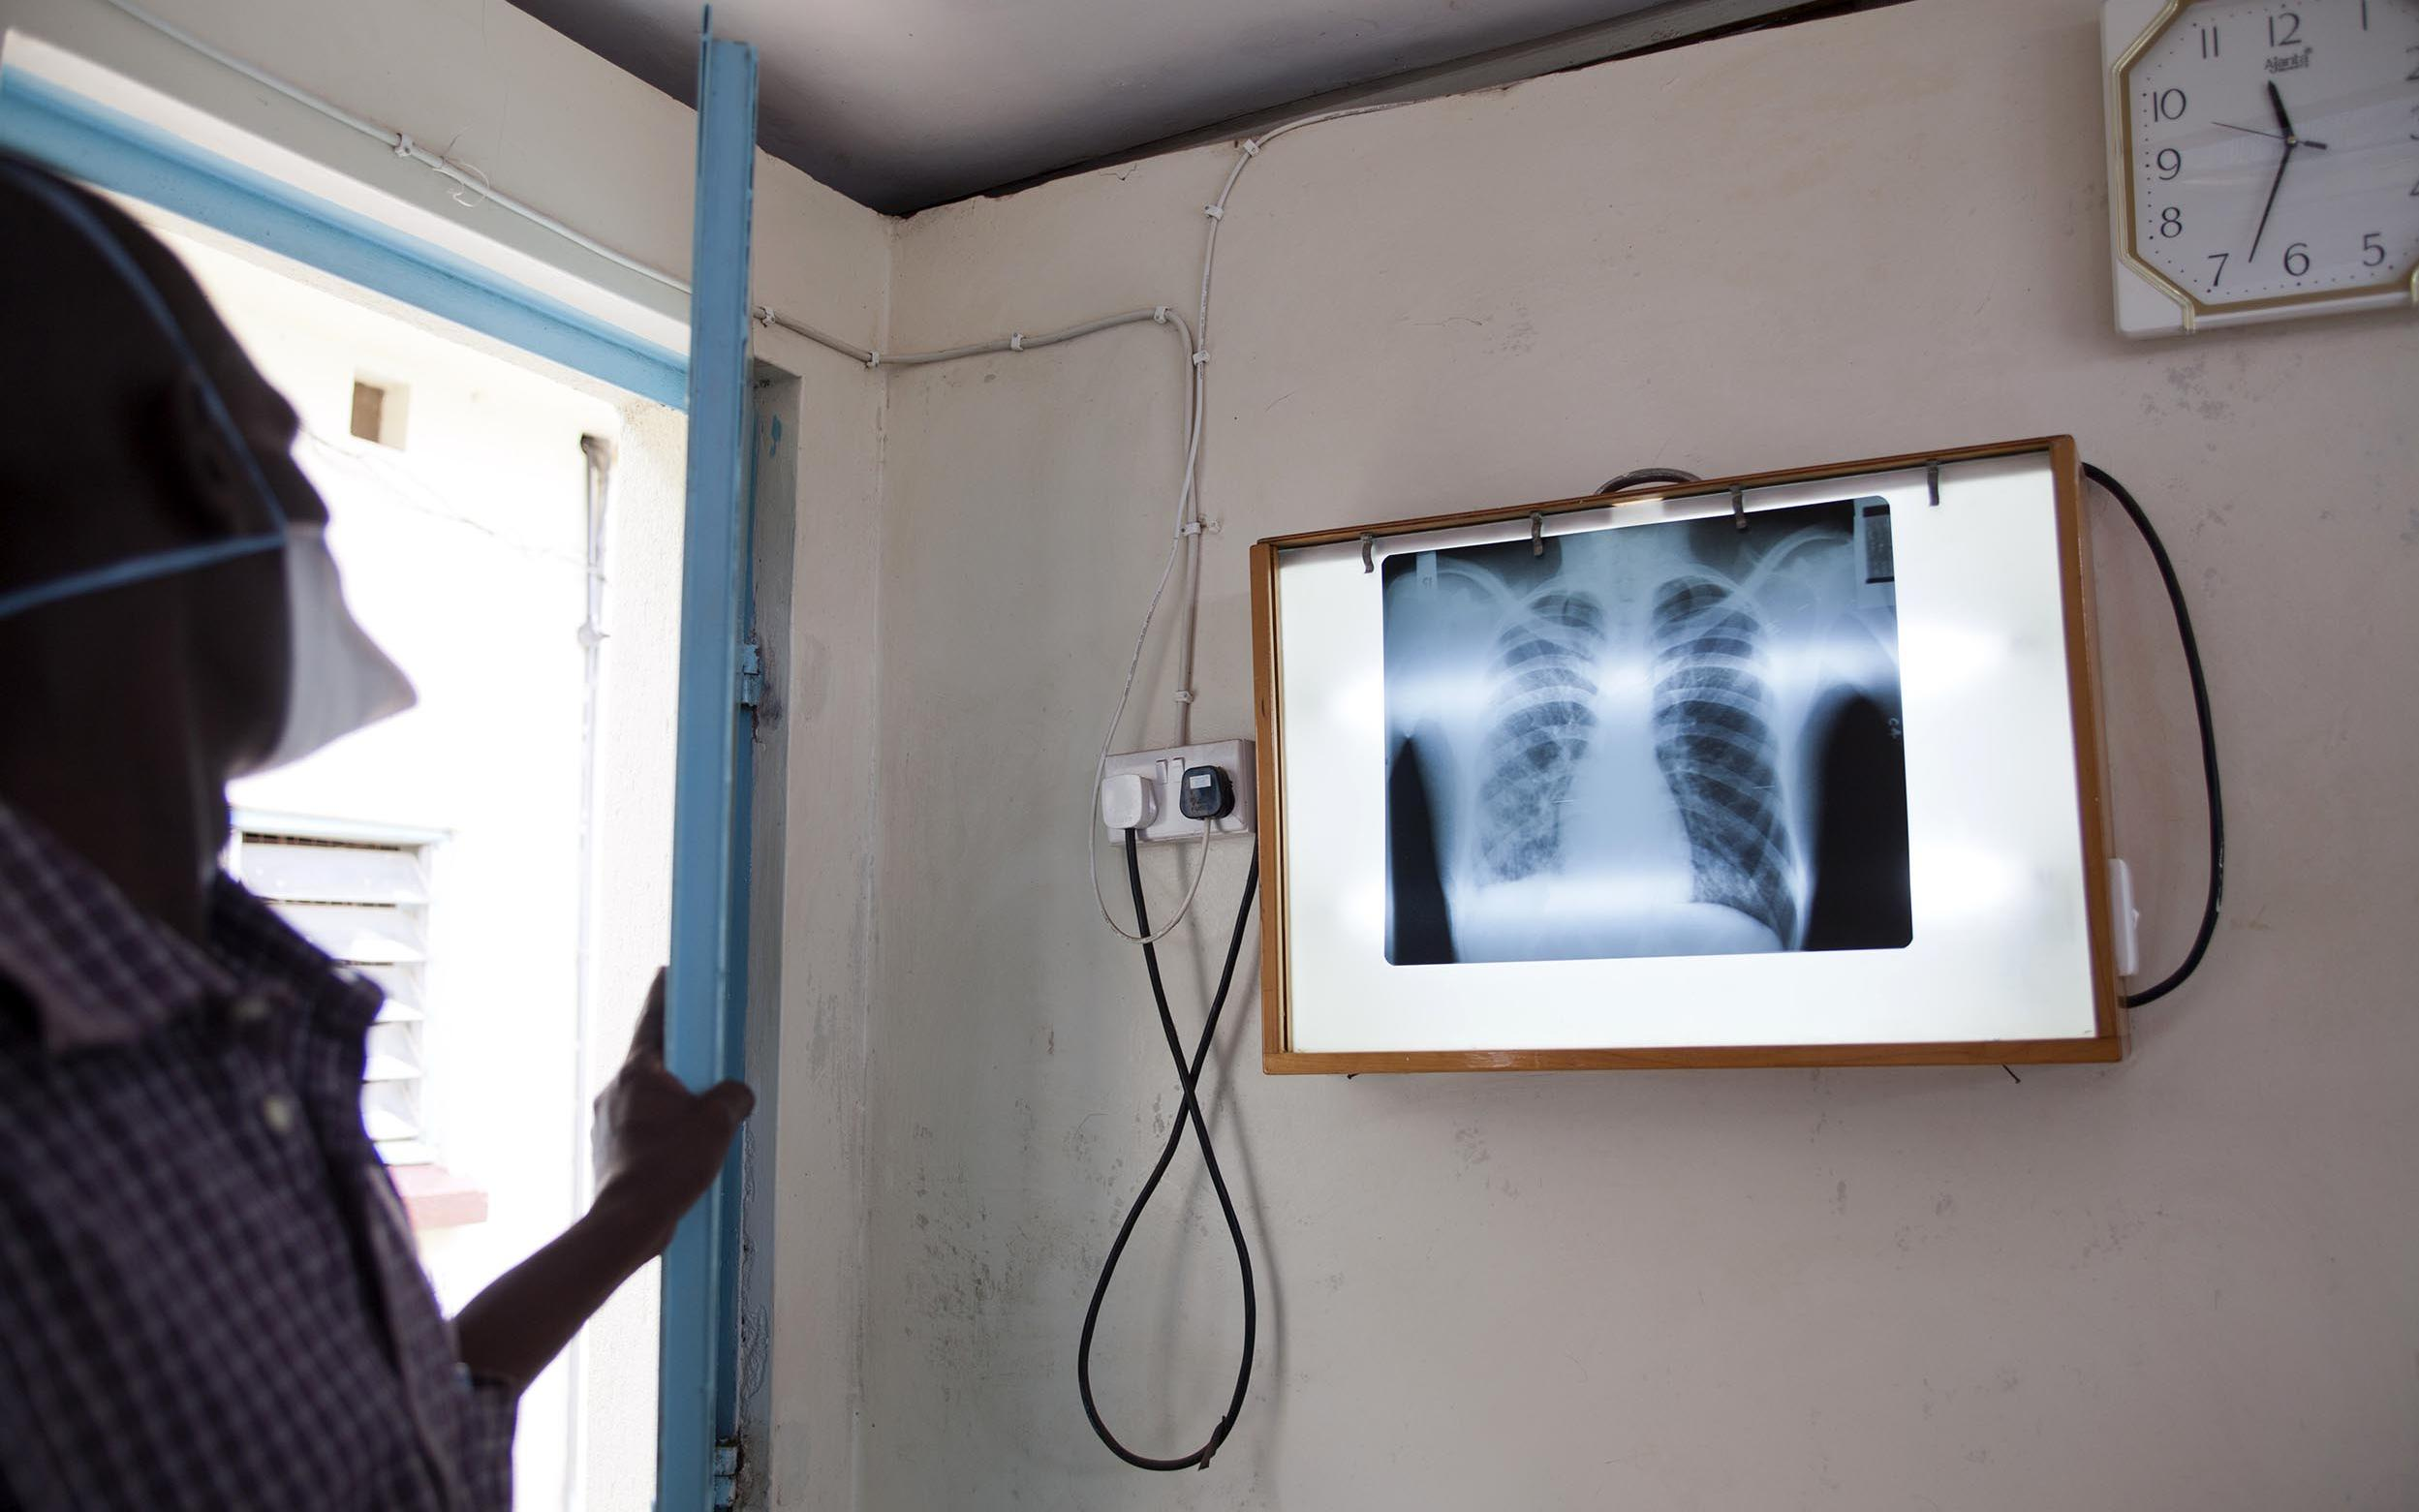 A chest x-ray is not available in many resource-limited settings, or TB diagnosis is not possible in many patients using only chest X-ray.